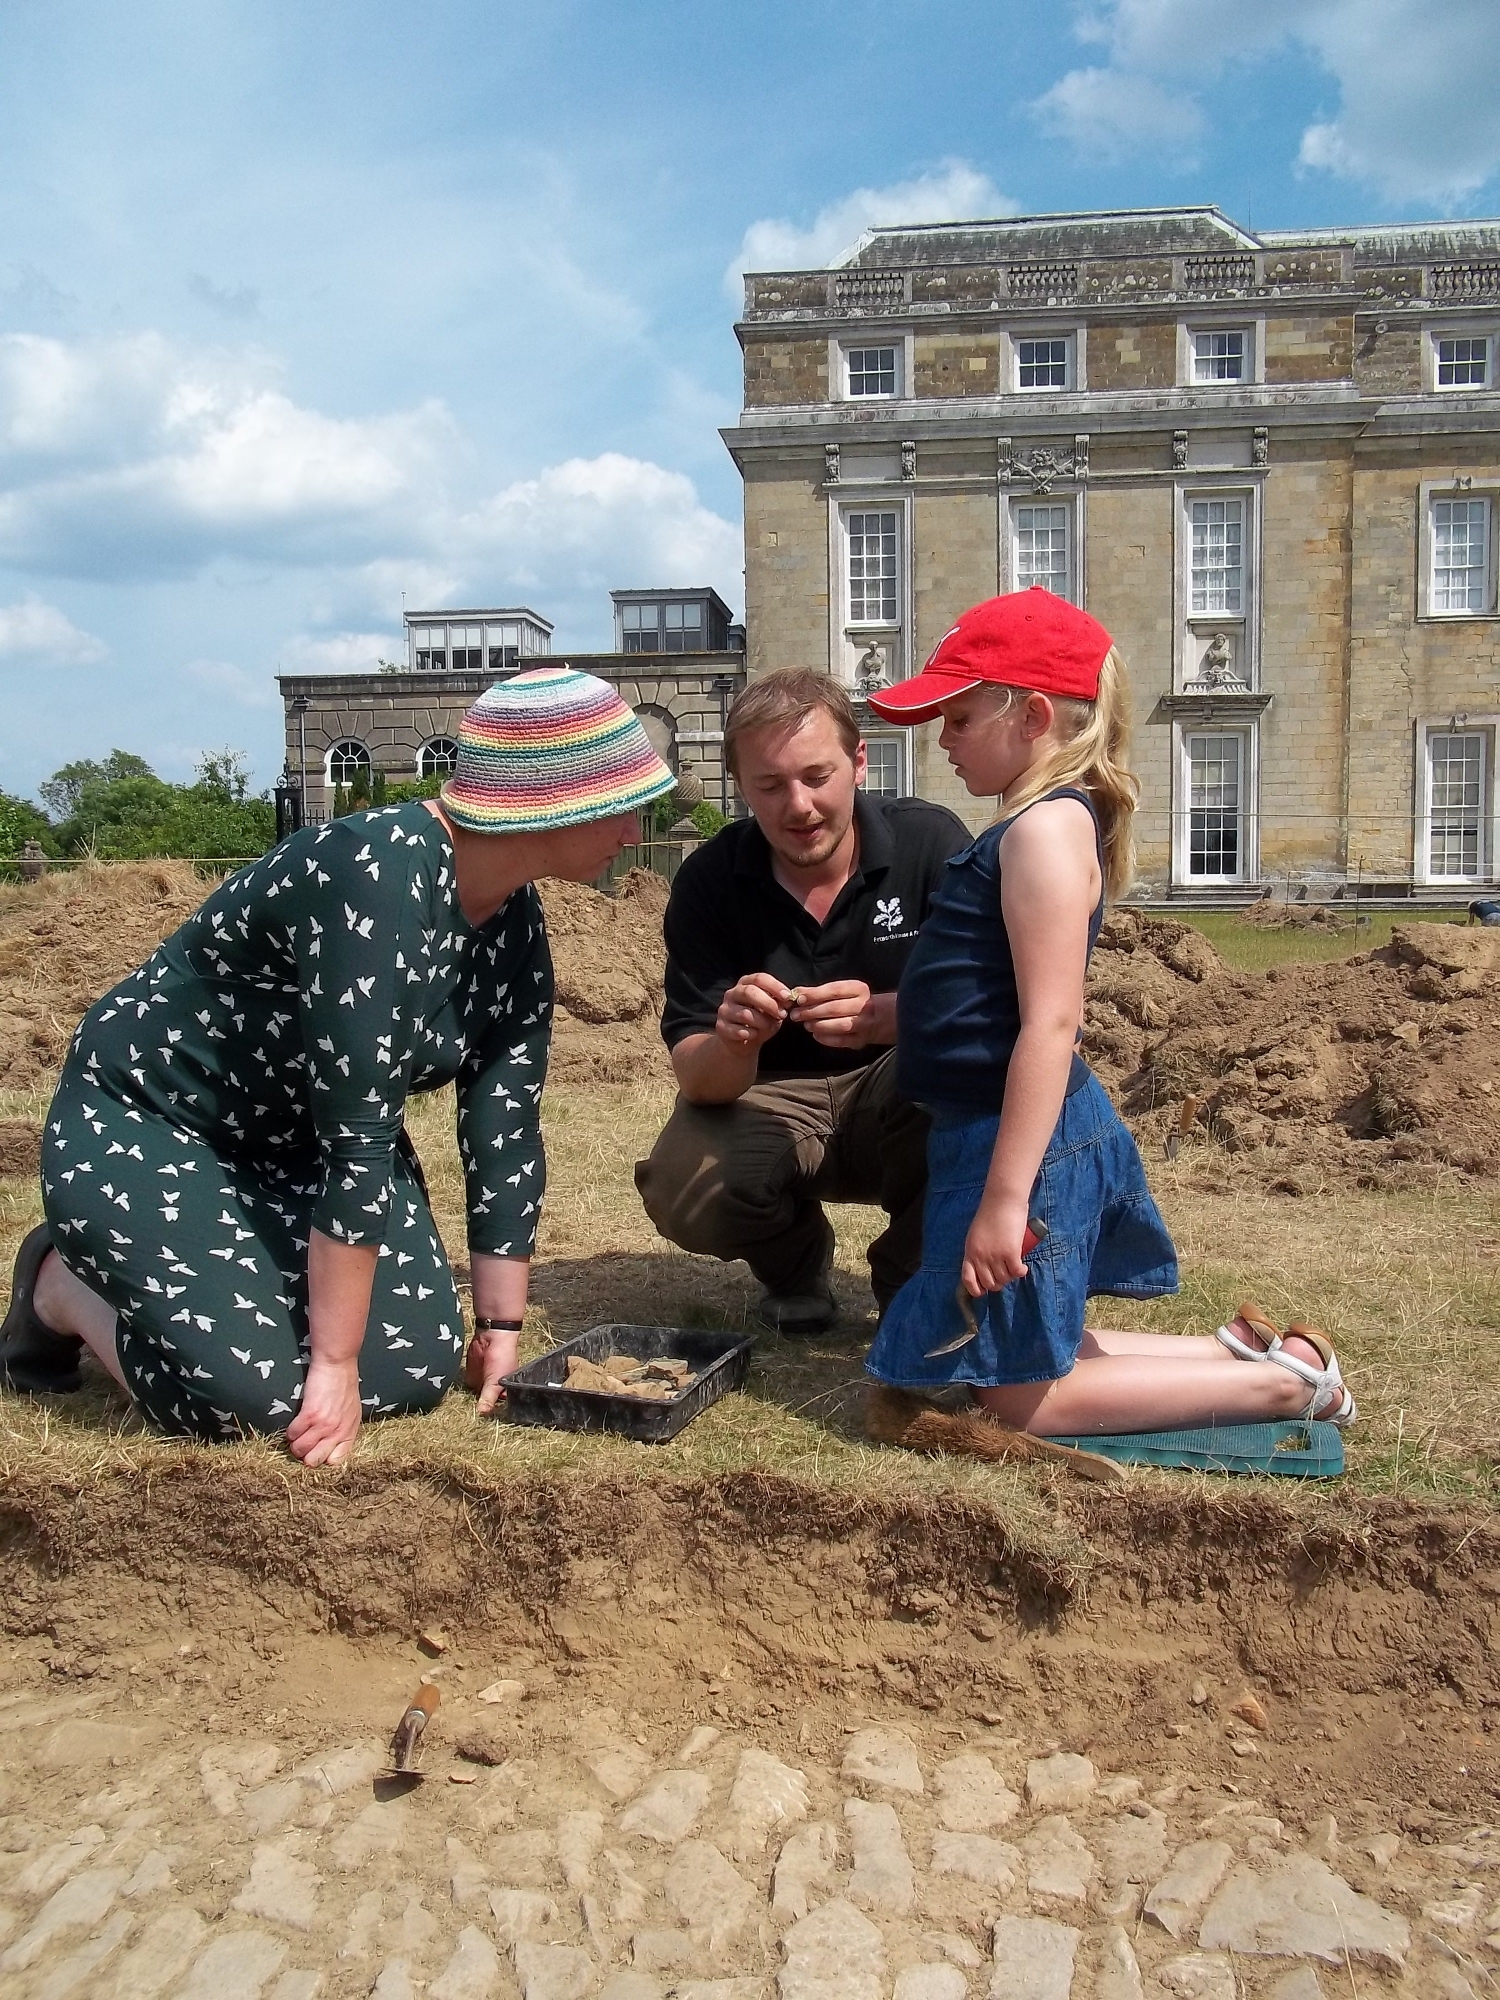 Archaeologists dig at Petworth House in search for medieval banqueting hall